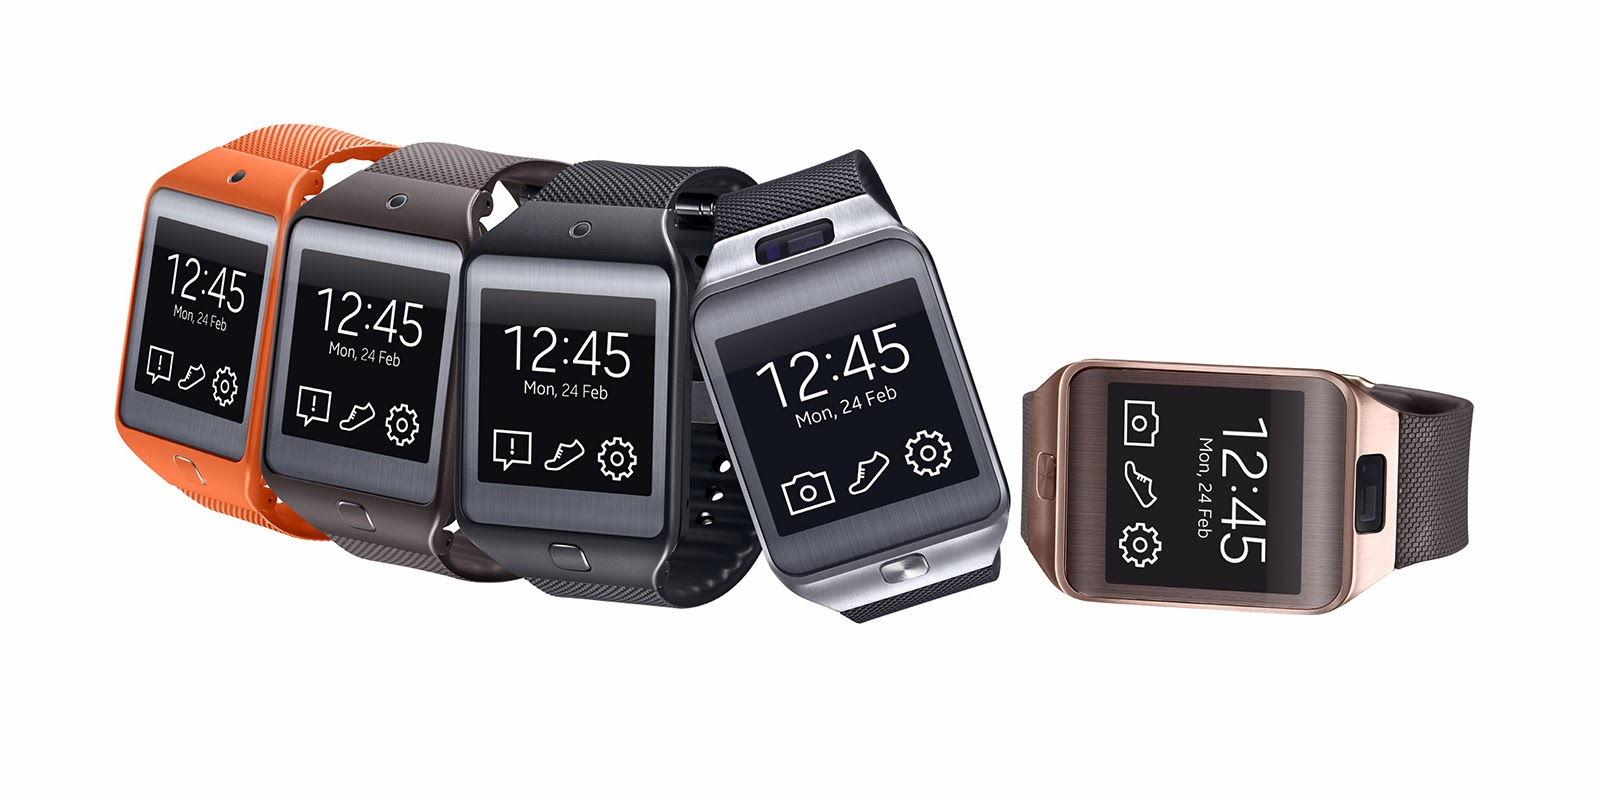 Samsung Gear 2 and Gear 2 Neo officially announced